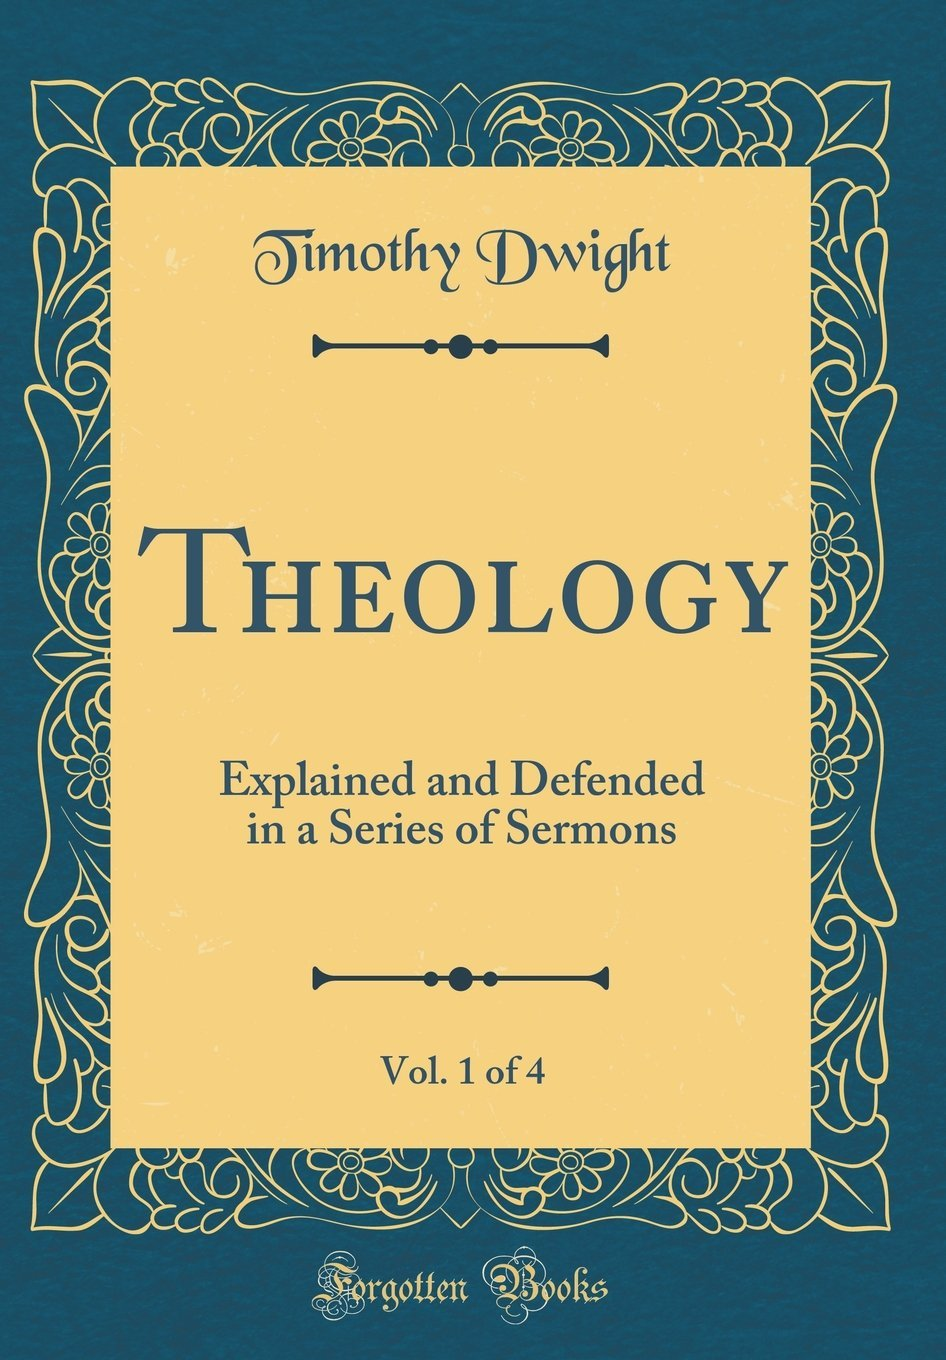 Theology, Vol. 1 of 4: Explained and Defended in a Series of Sermons (Classic Reprint) ePub fb2 book